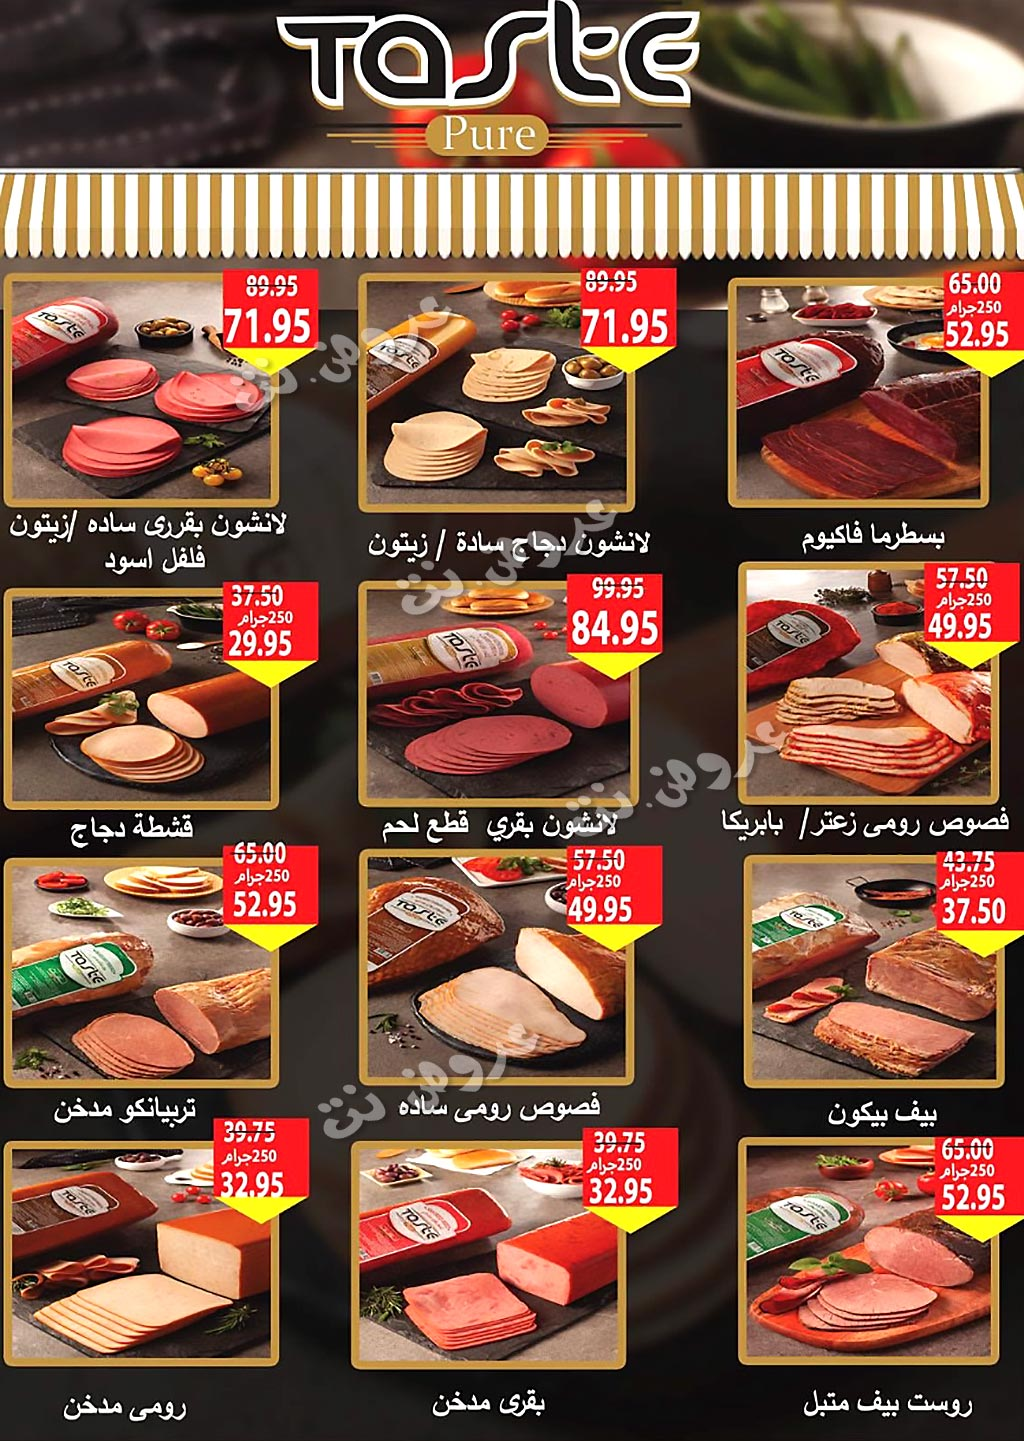 spinneys offers from 28may to 13june 2020 page number 5 عروض سبينس من 28 مايو حتى 13 يونيو 2020 صفحة رقم 5